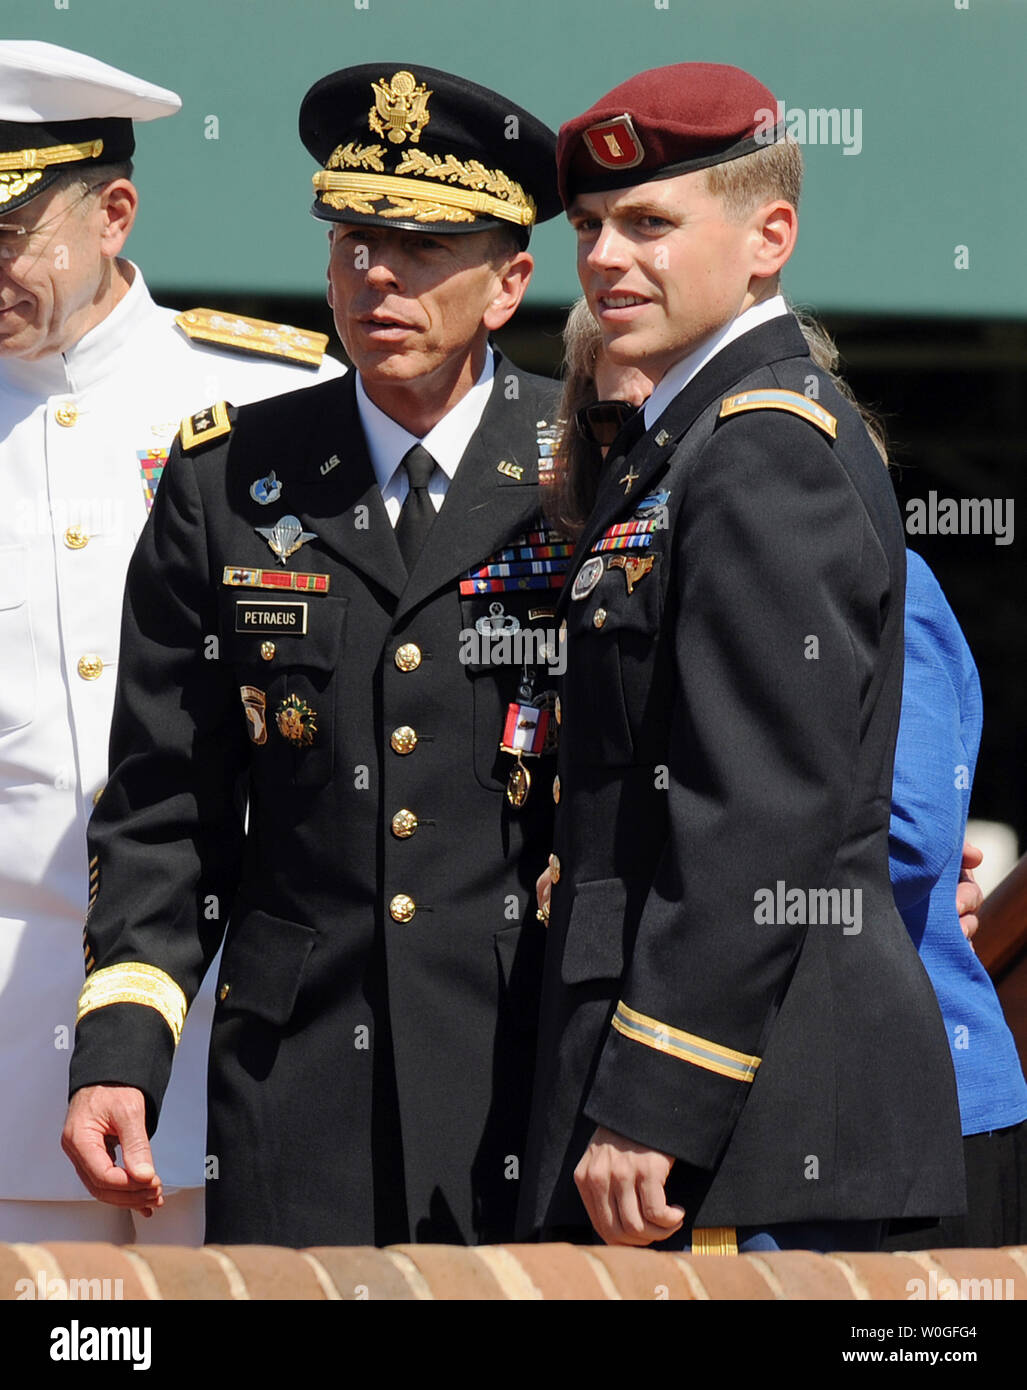 Gen. David Petraeus stands with his son Stephen, who served in Afghanistan, during an armed forces farewell tribute and retirement ceremony in his honor at Ft. Myer in Virginia on August 31, 2011. Petraeus will soon start his new job as Central Intelligence Agency (CIA) Director. With him are Chairman of the Joint Chiefs of Staff Adm. Michael Mullen (R) and Deputy Defense Secretary William Lynn.     UPI/Roger L. Wollenberg - Stock Image